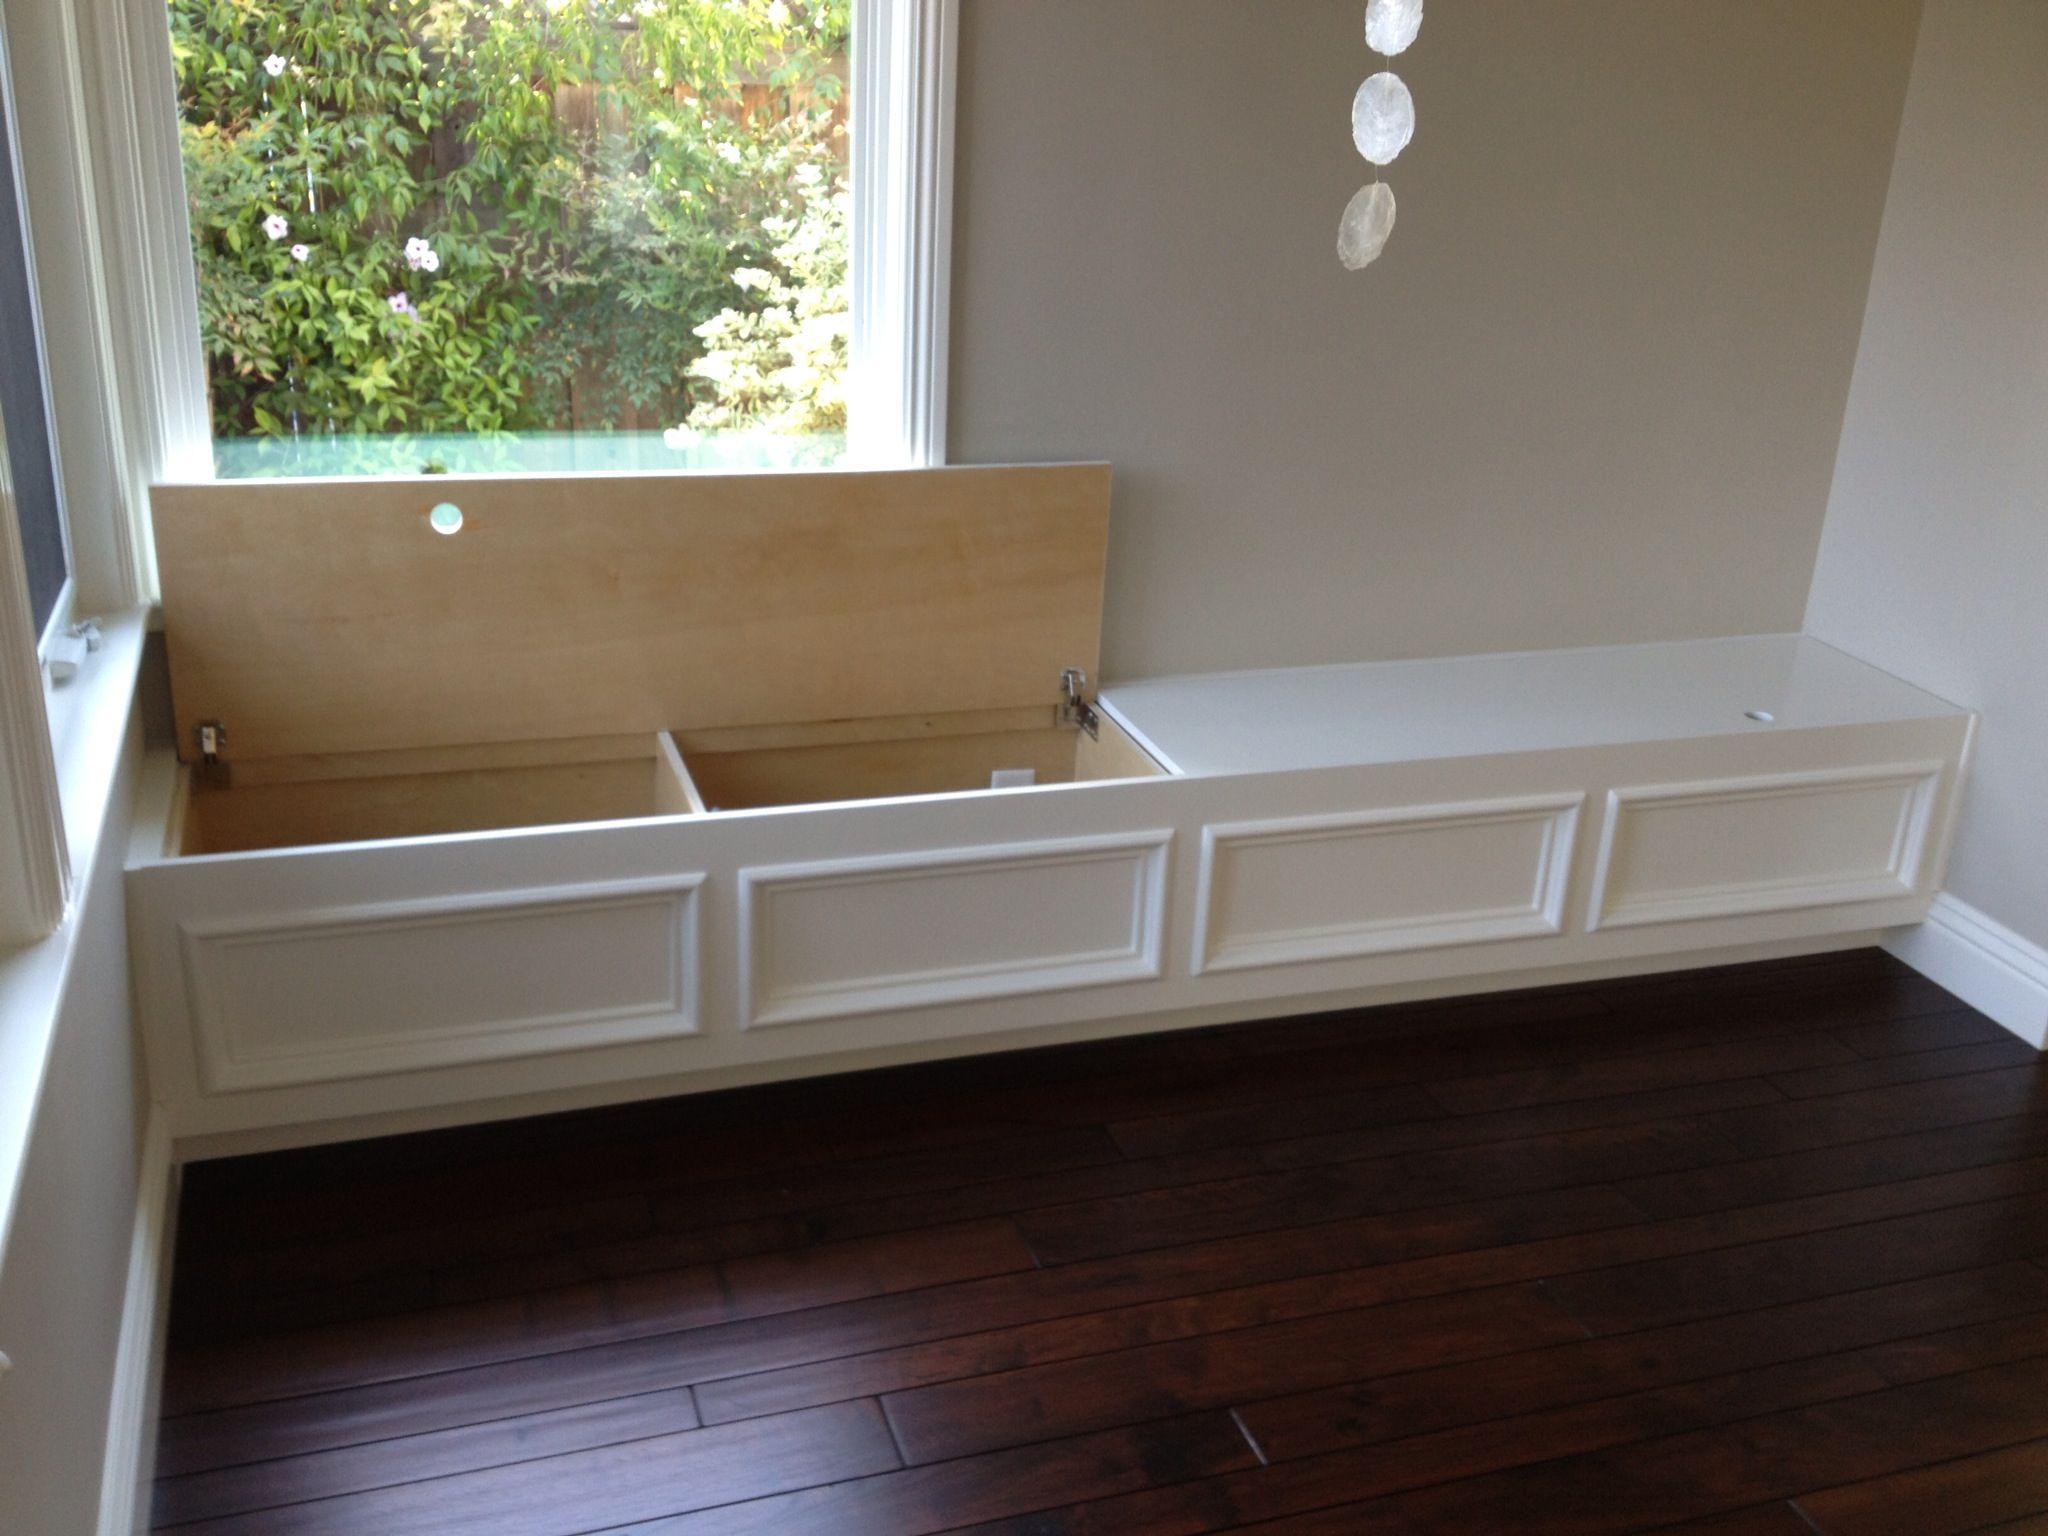 Extra Long Storage Bench Built In Bench Seat With Storage Put Along Wall In Family Room For